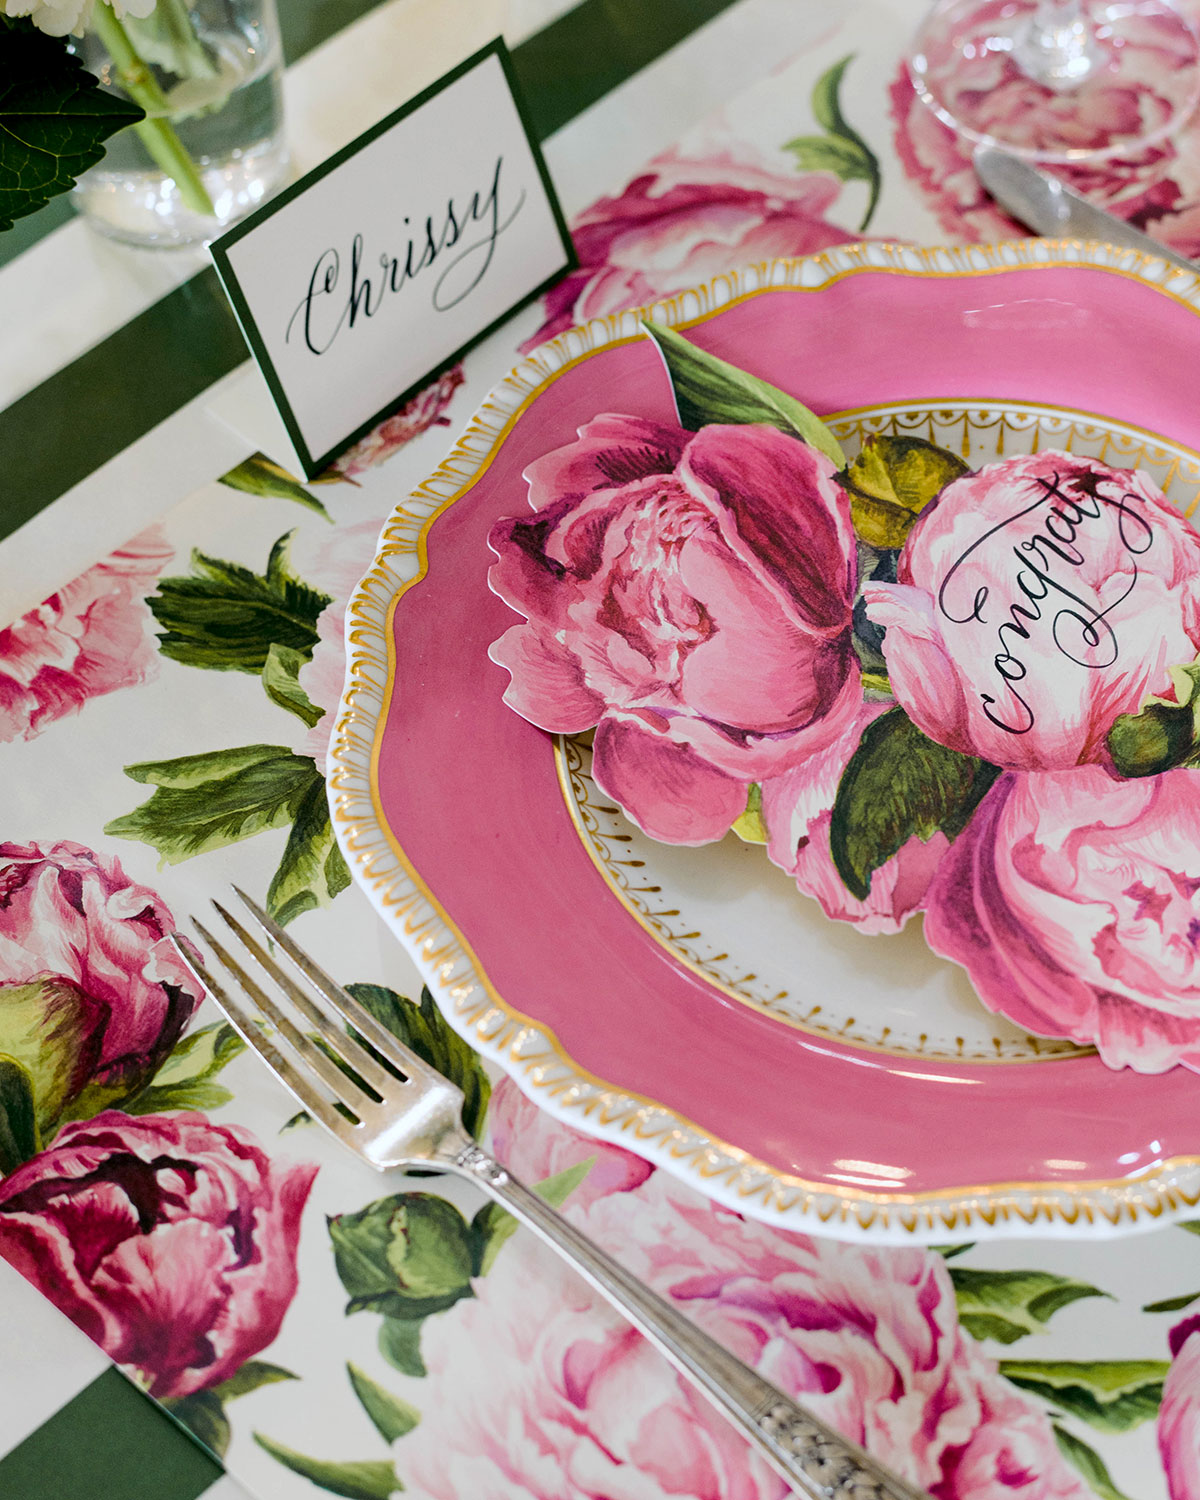 Hester & Cook Blooming Peonies Tablescape Collection